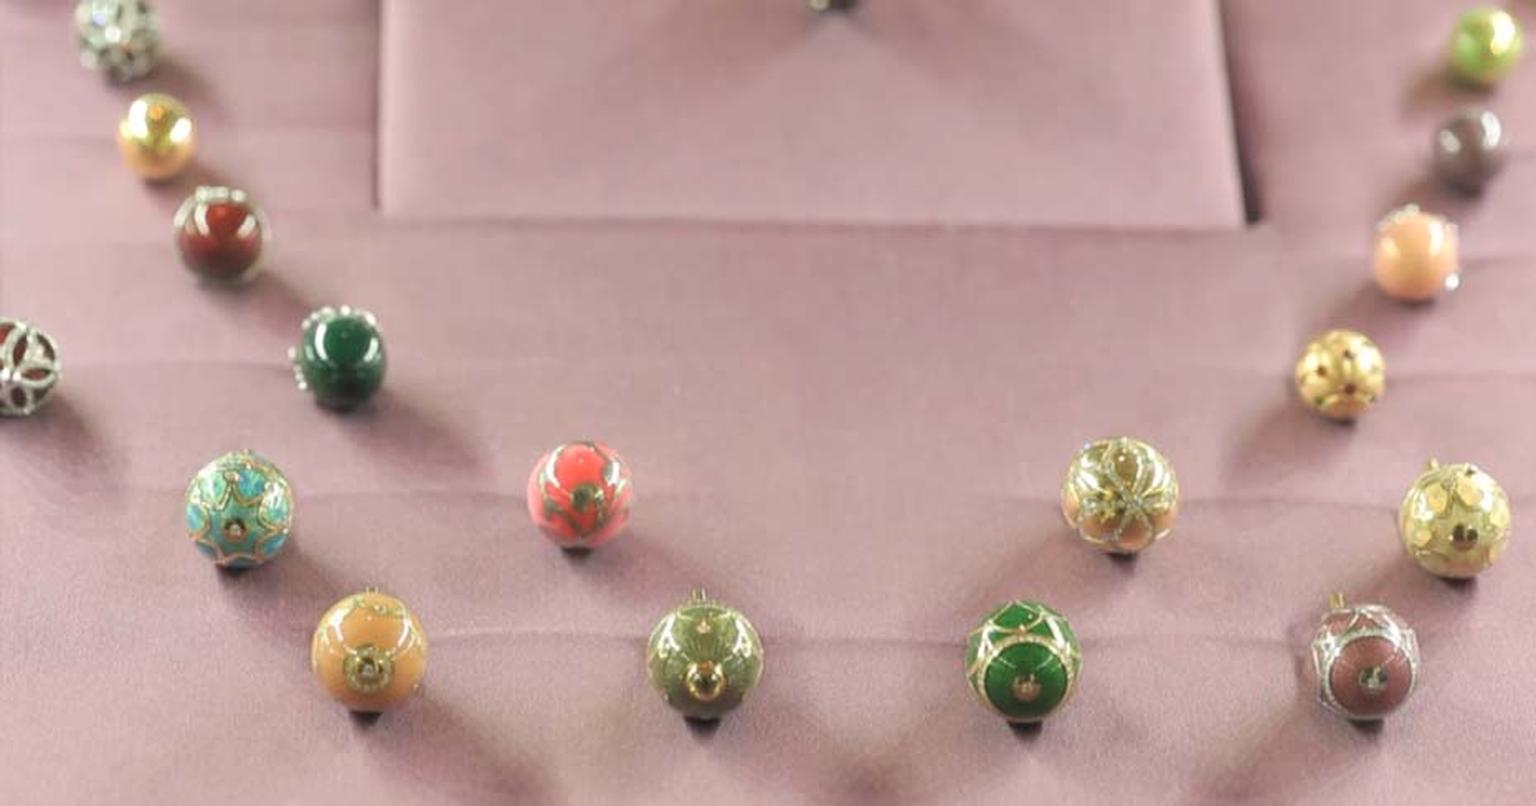 The Fabergé egg pendants available at the 'Egg Bar' at Harrods can be personalised on the spot with your own message